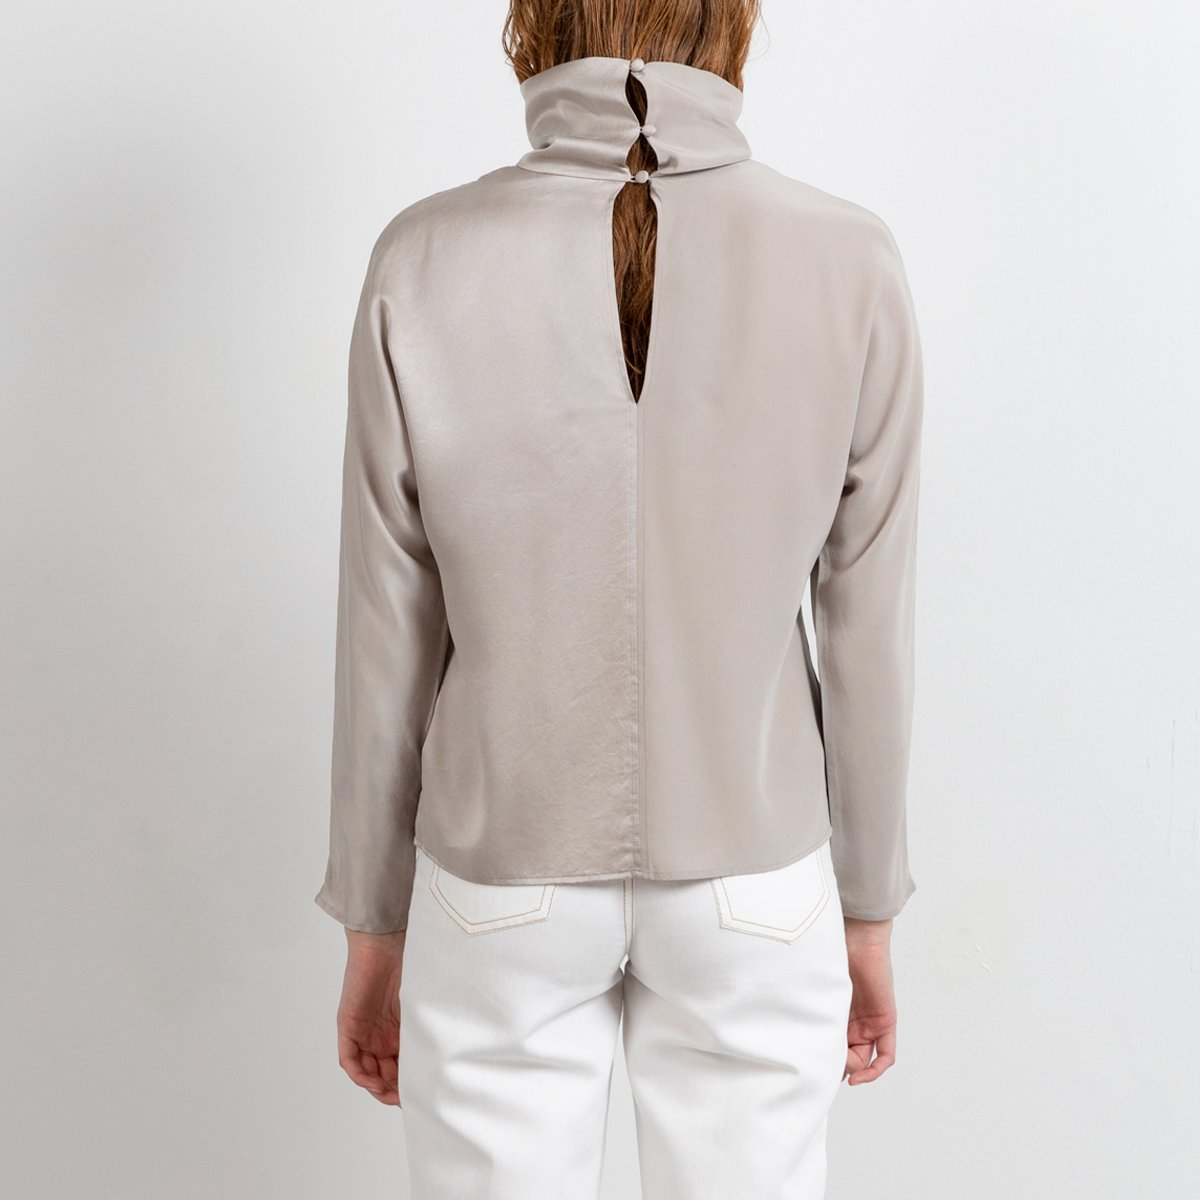 Long sleeve top in beige grey with cowl neck